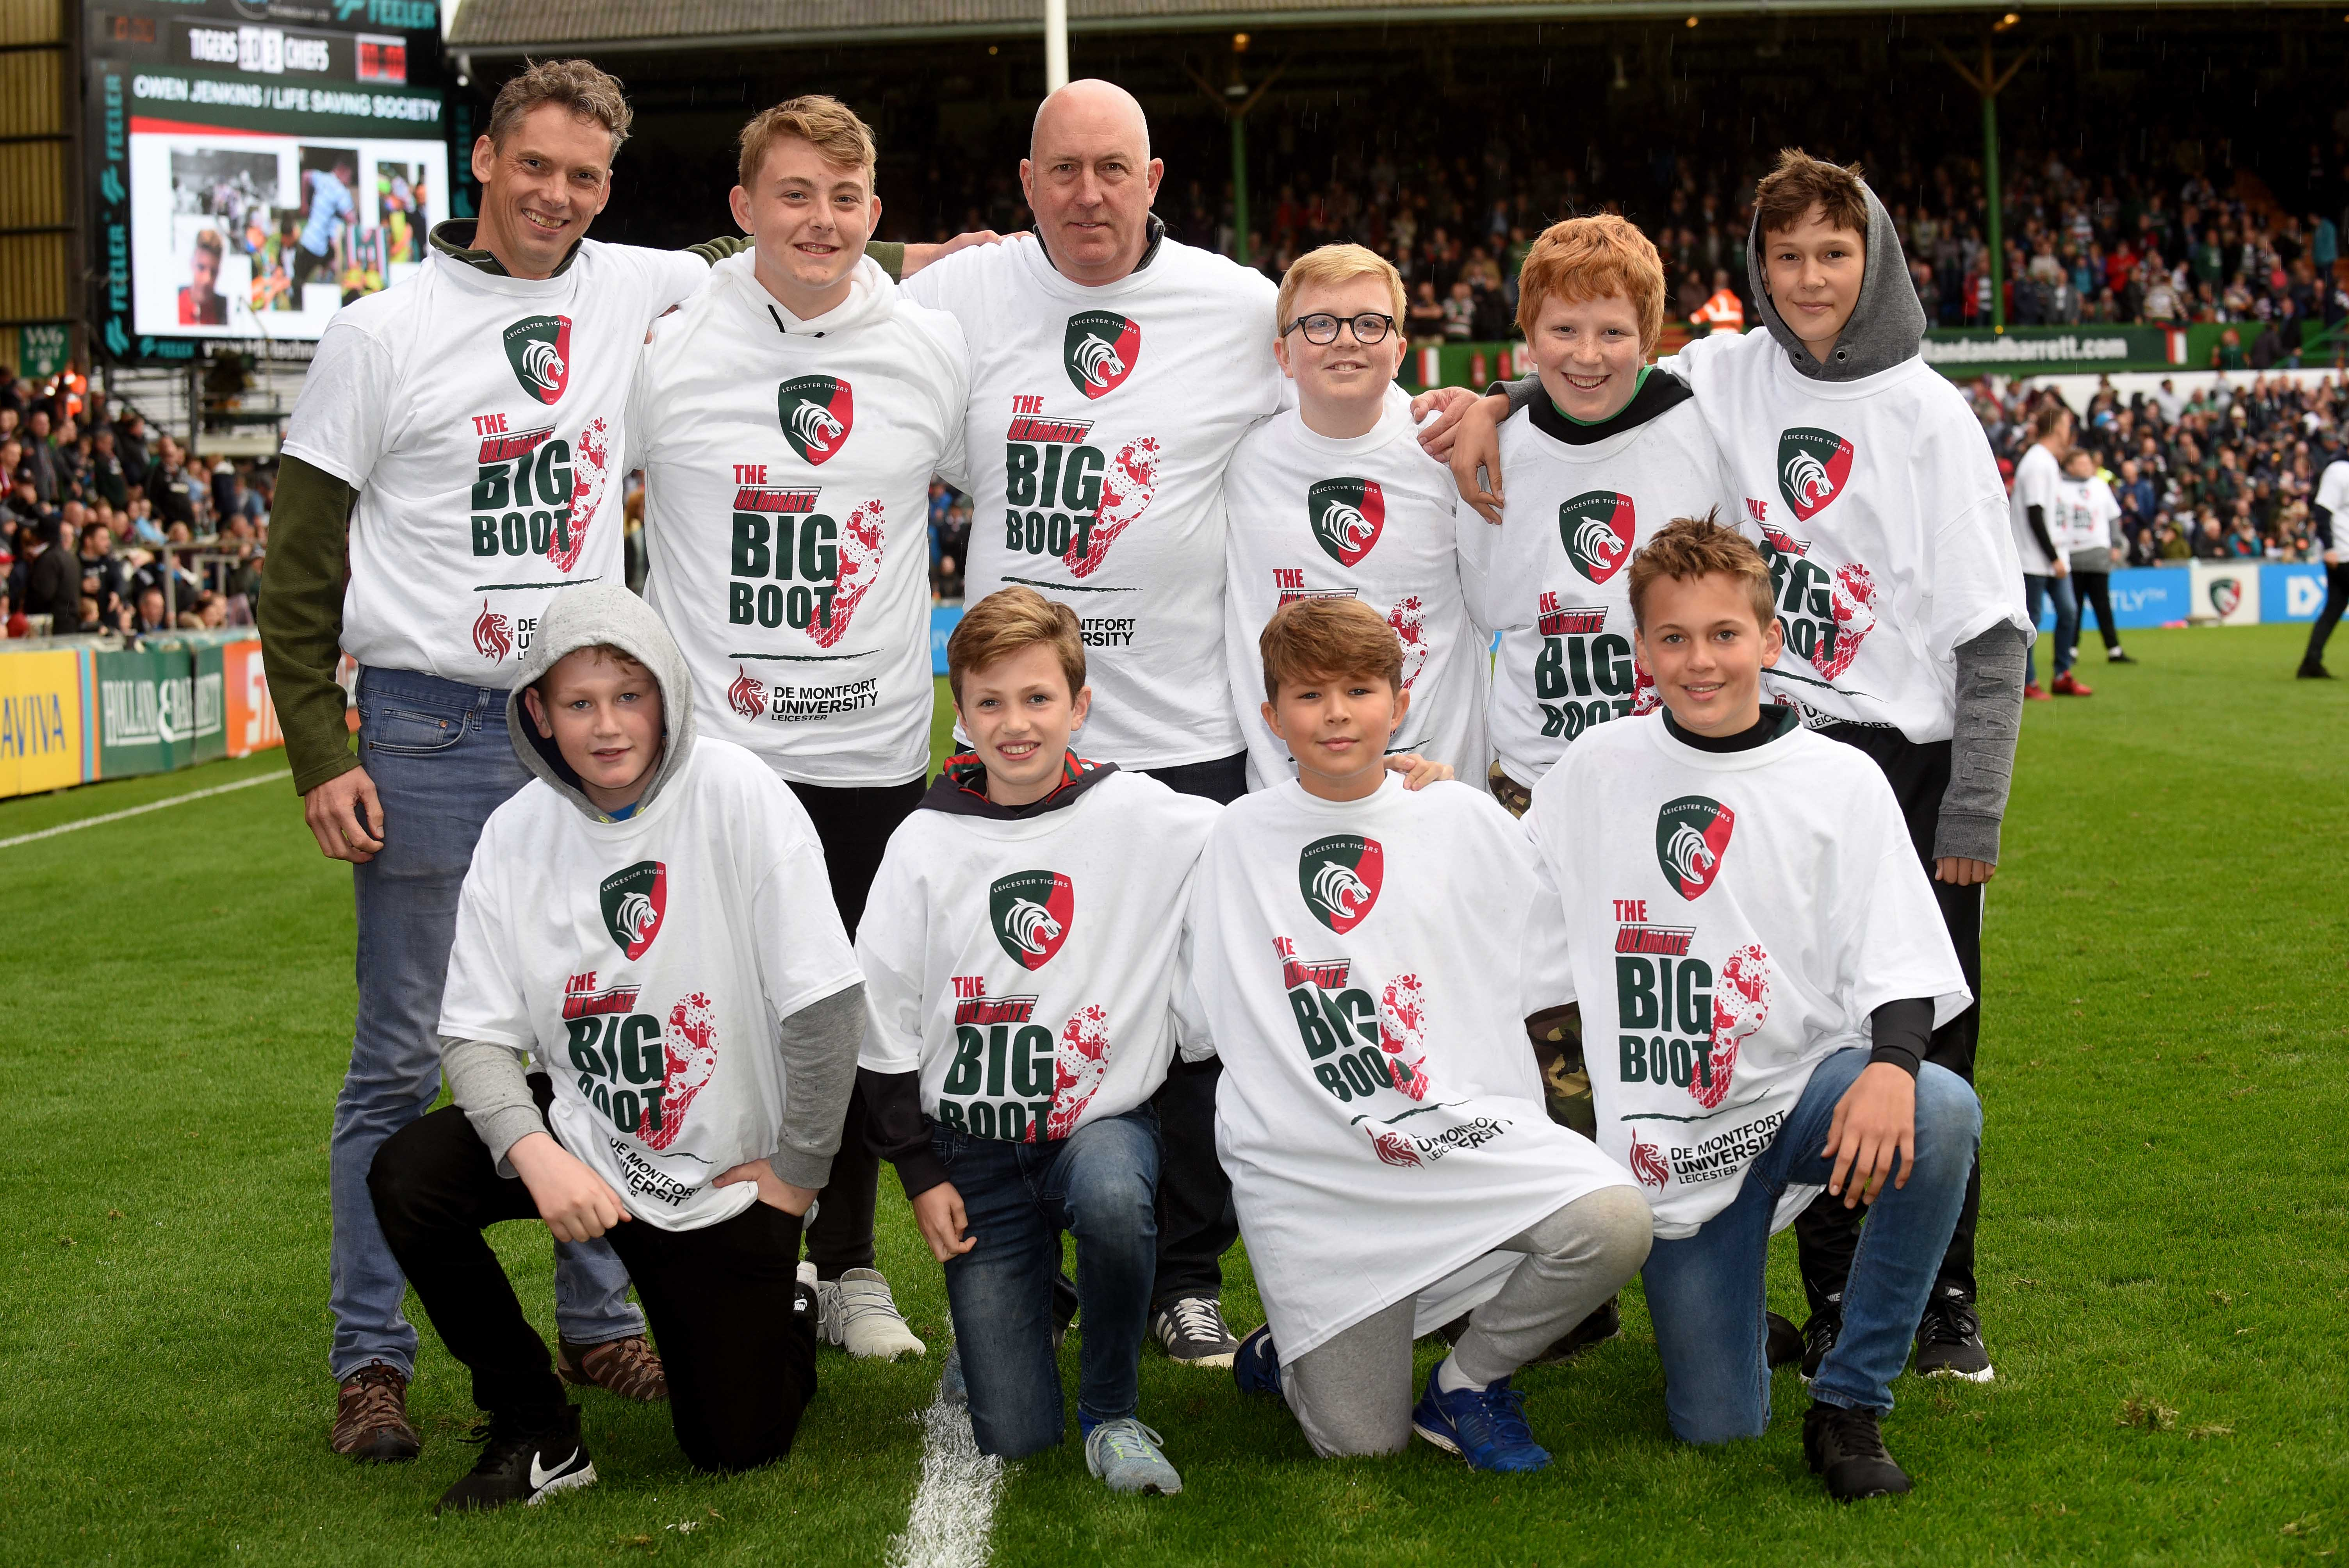 Organise a fun day out with a group of friends and family at Welford Road!